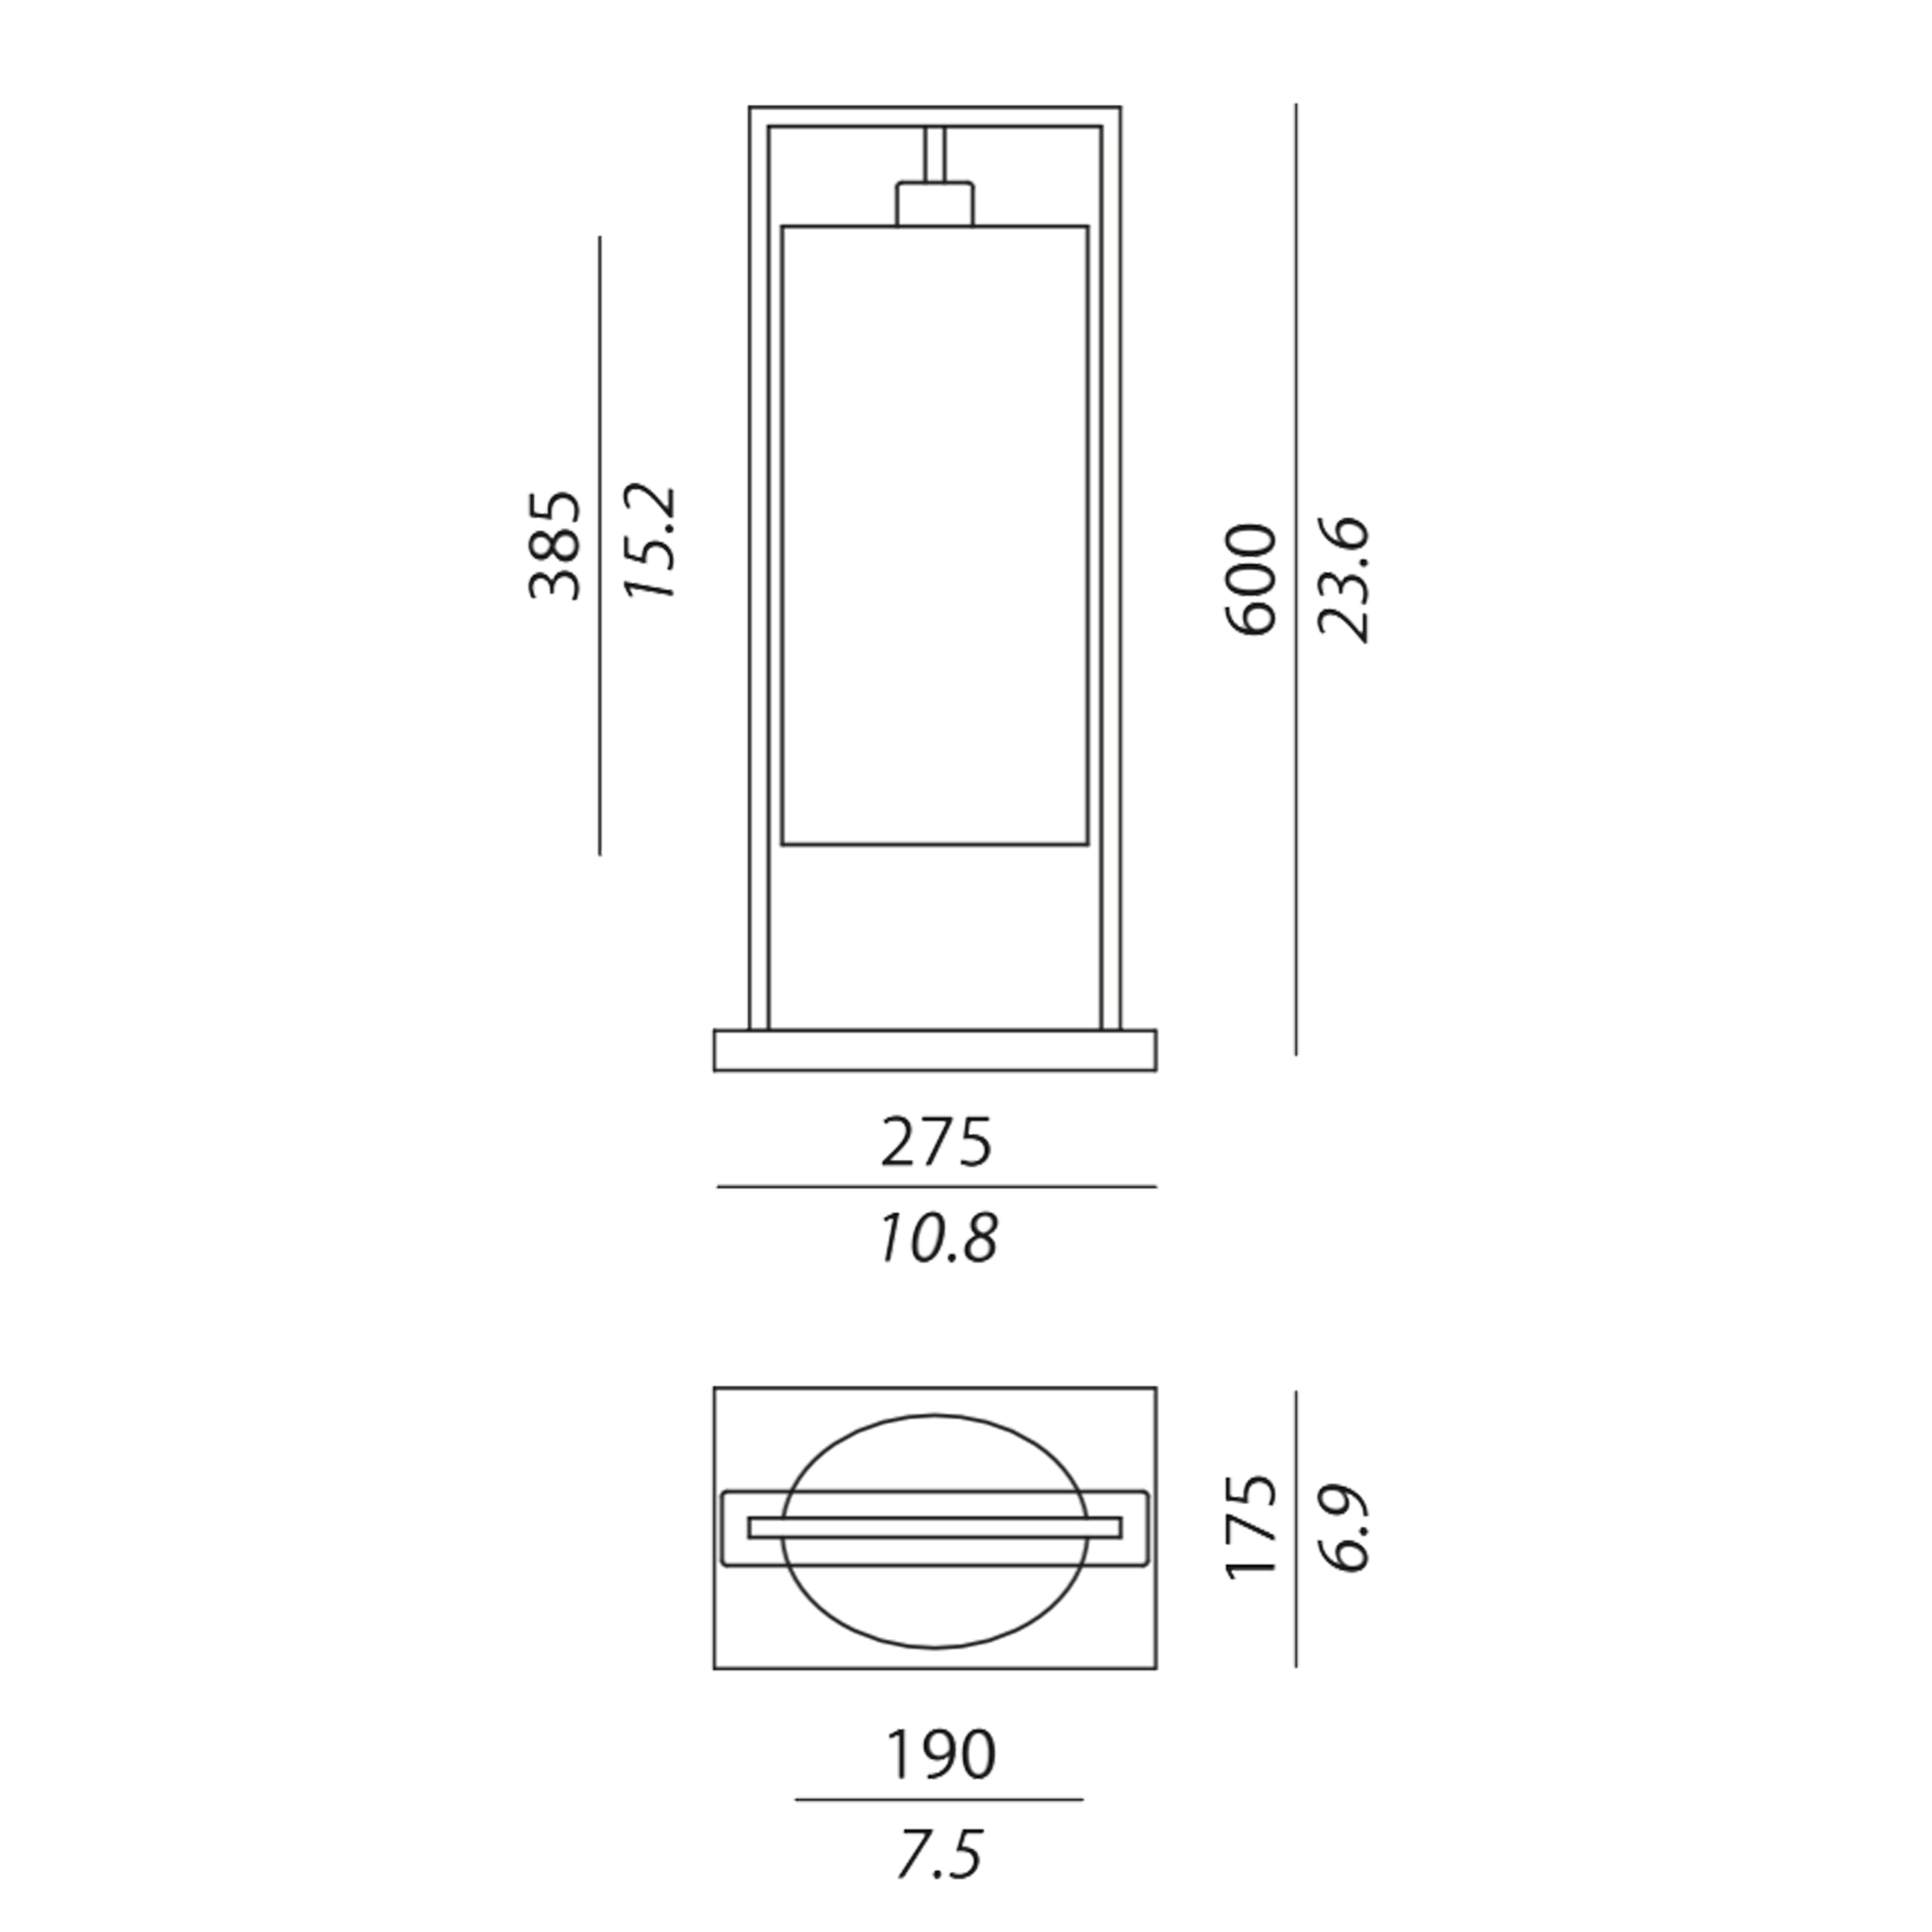 Contardi Athena Ap Wall Light Line Drawing